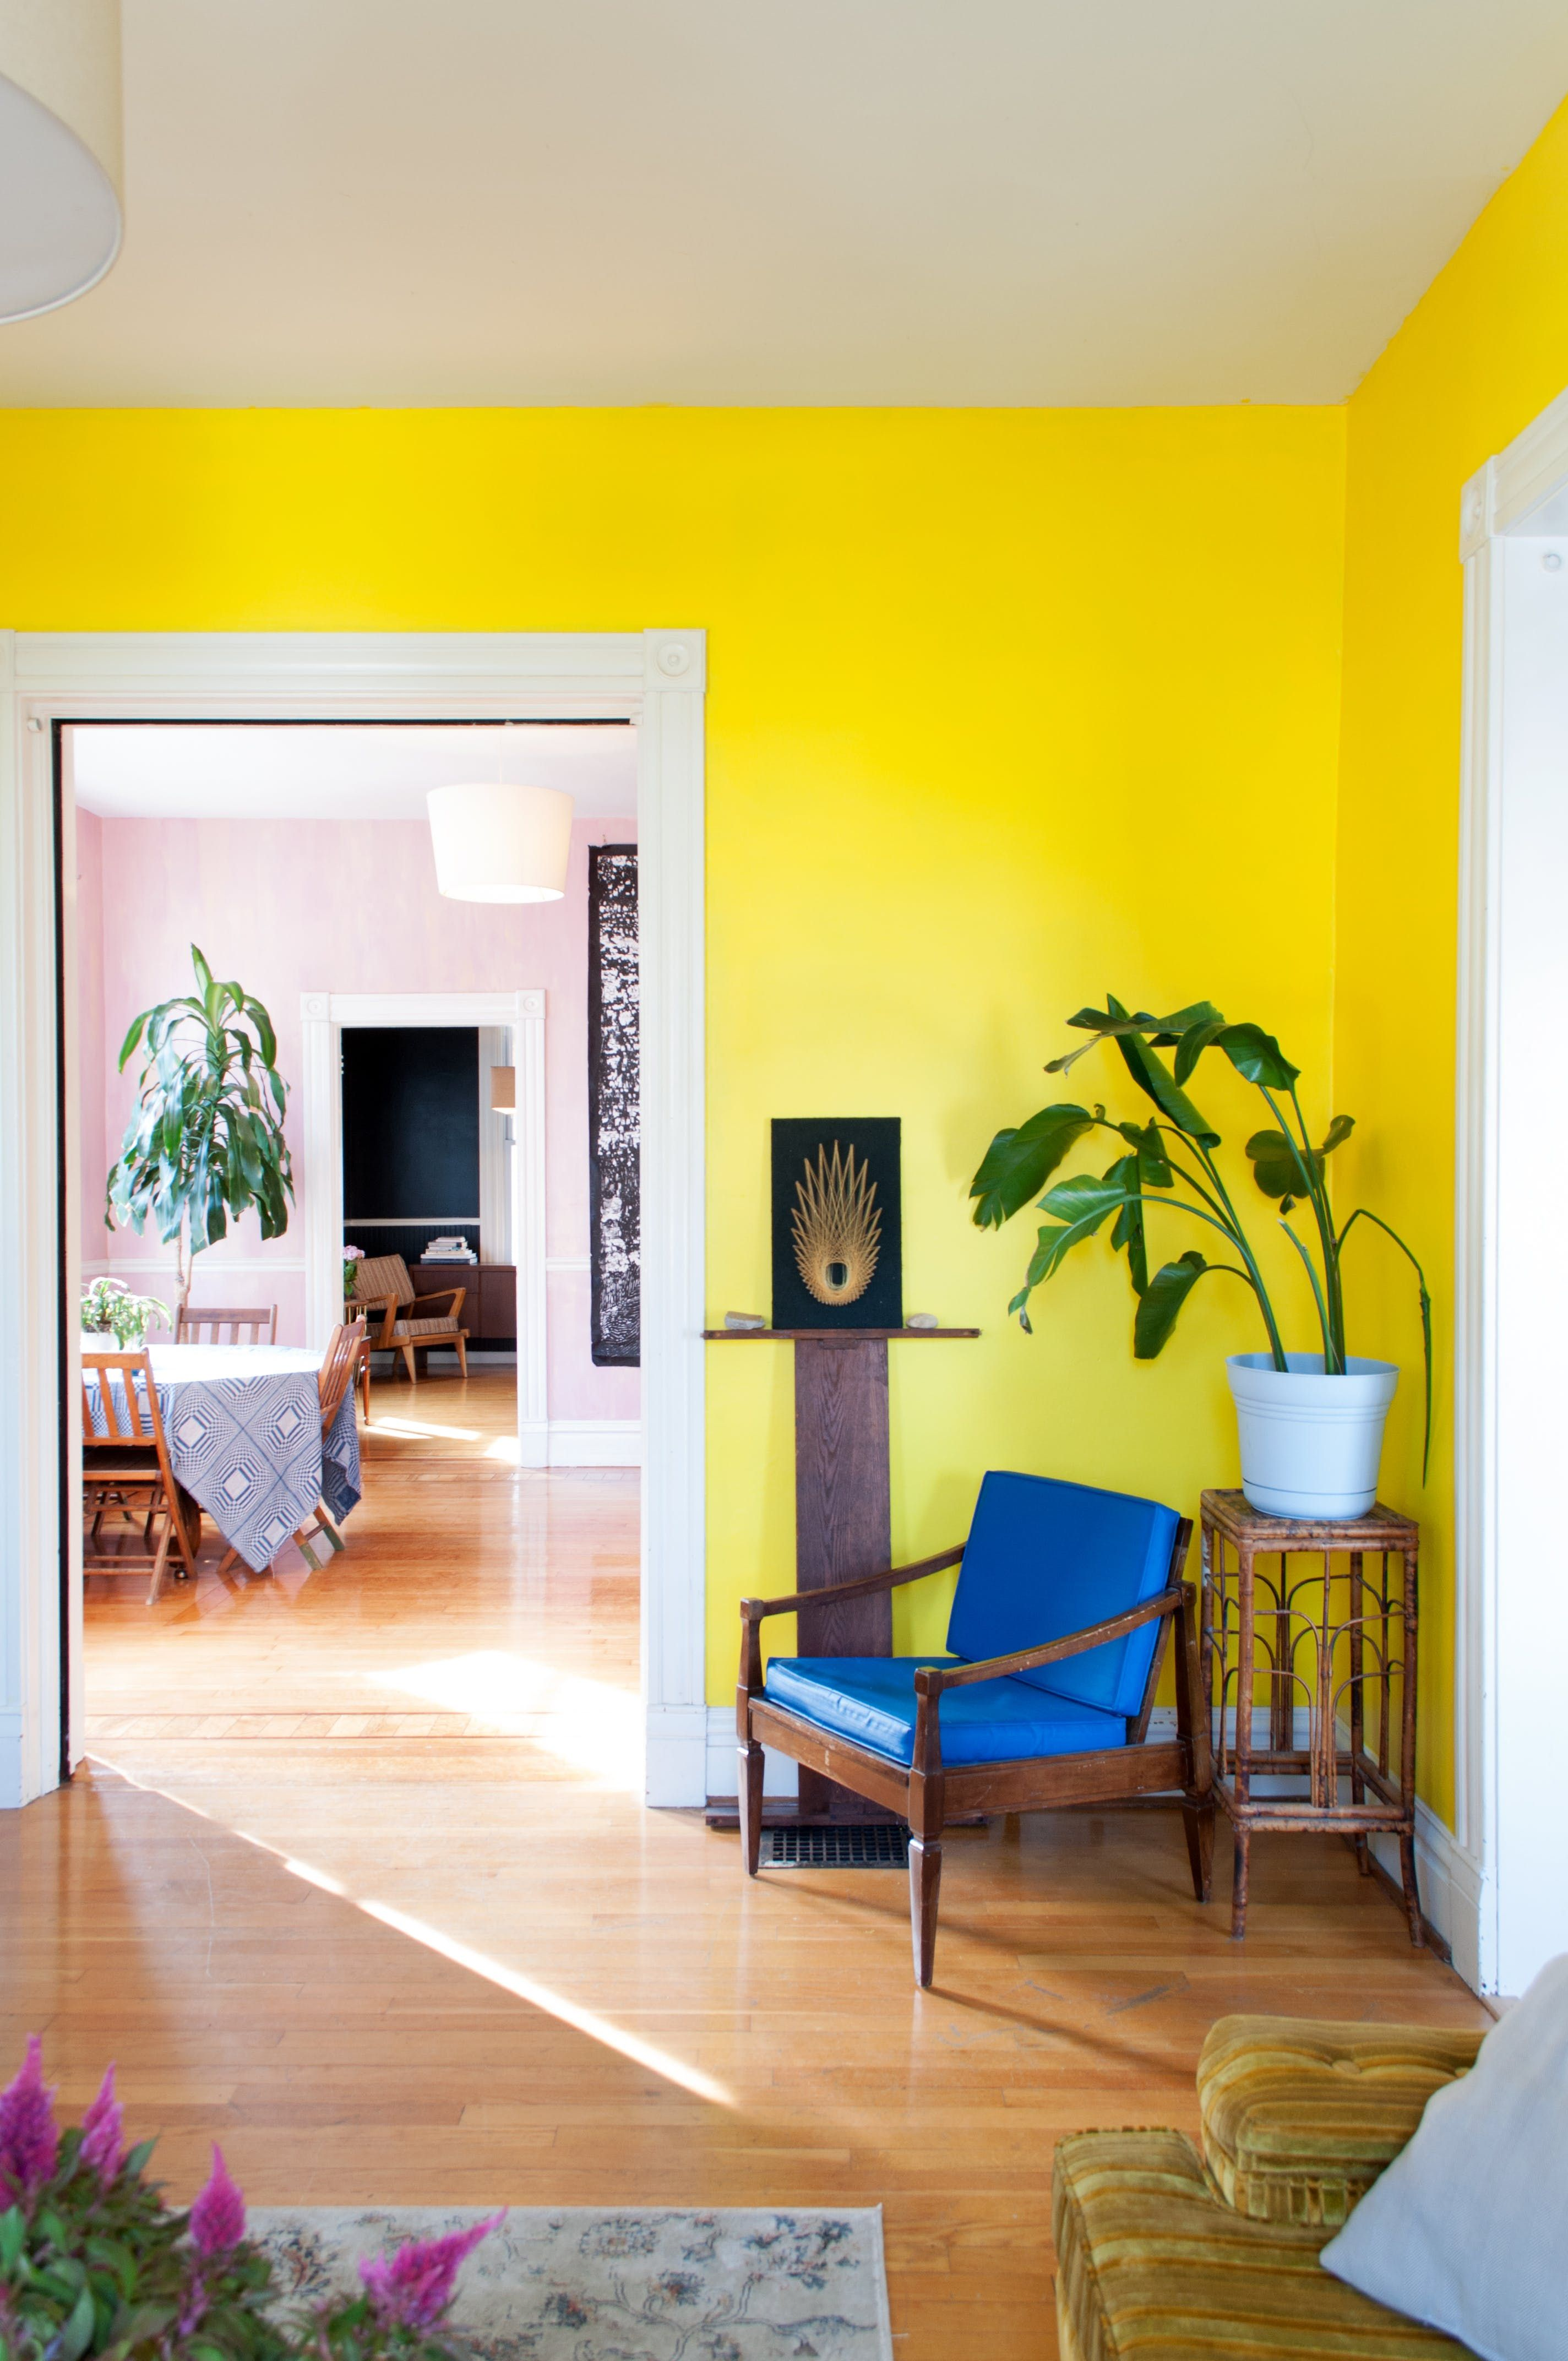 Pin On Interior Design Yellow background living room